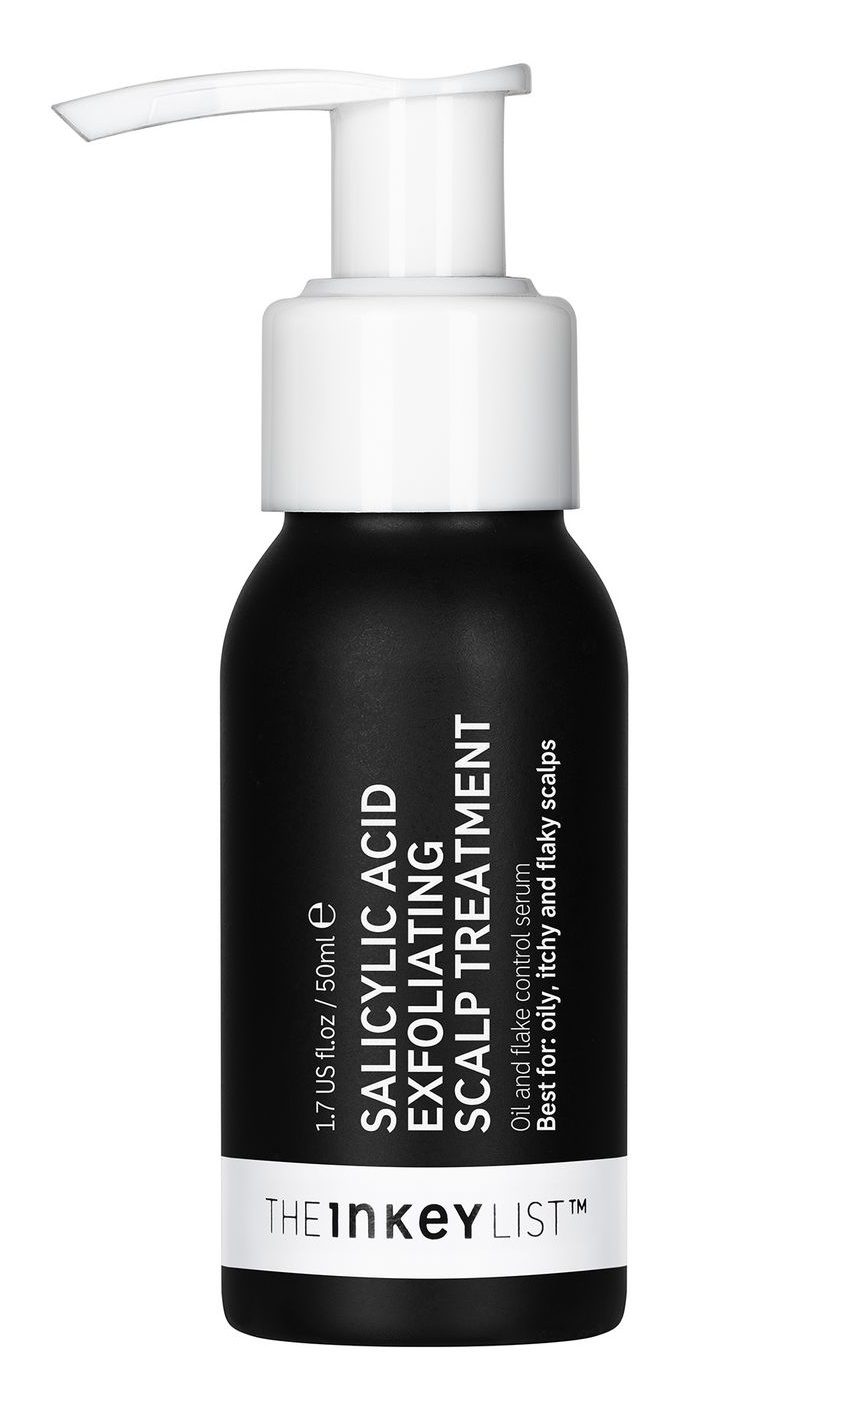 The Inkey List Salicylic Acid Exfoliating Scalp Treatment